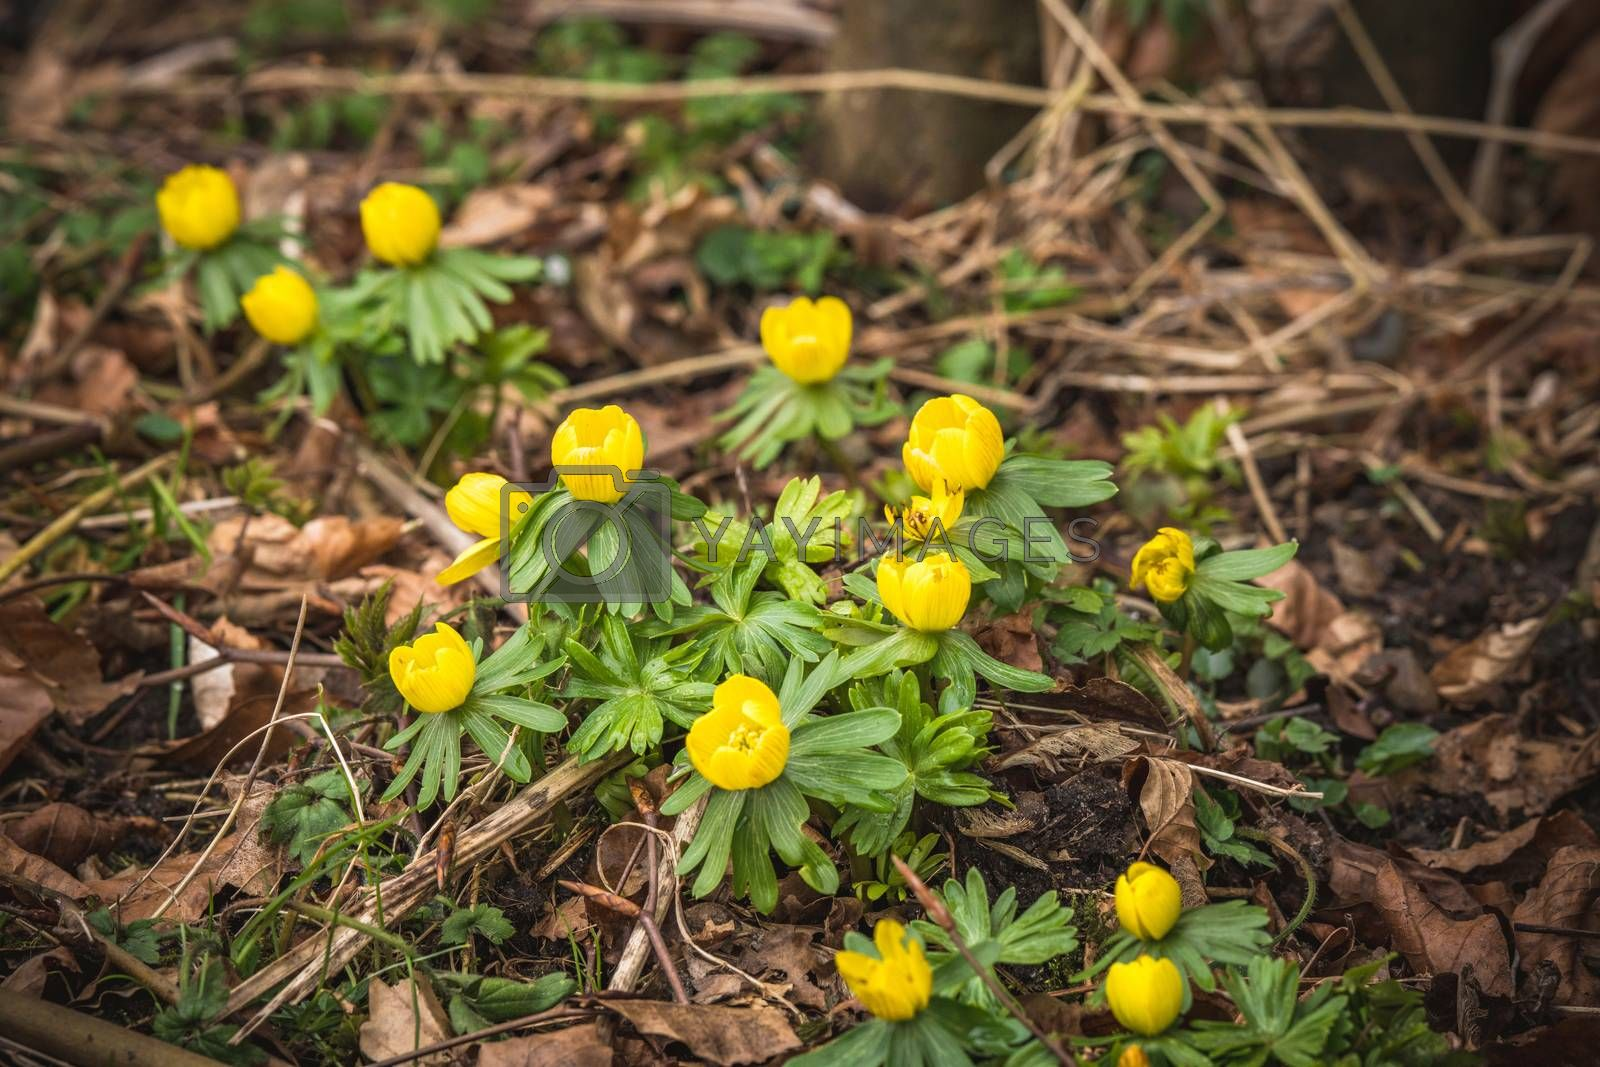 Eranthis flowers in yellow color blooming in a forest in the late winter